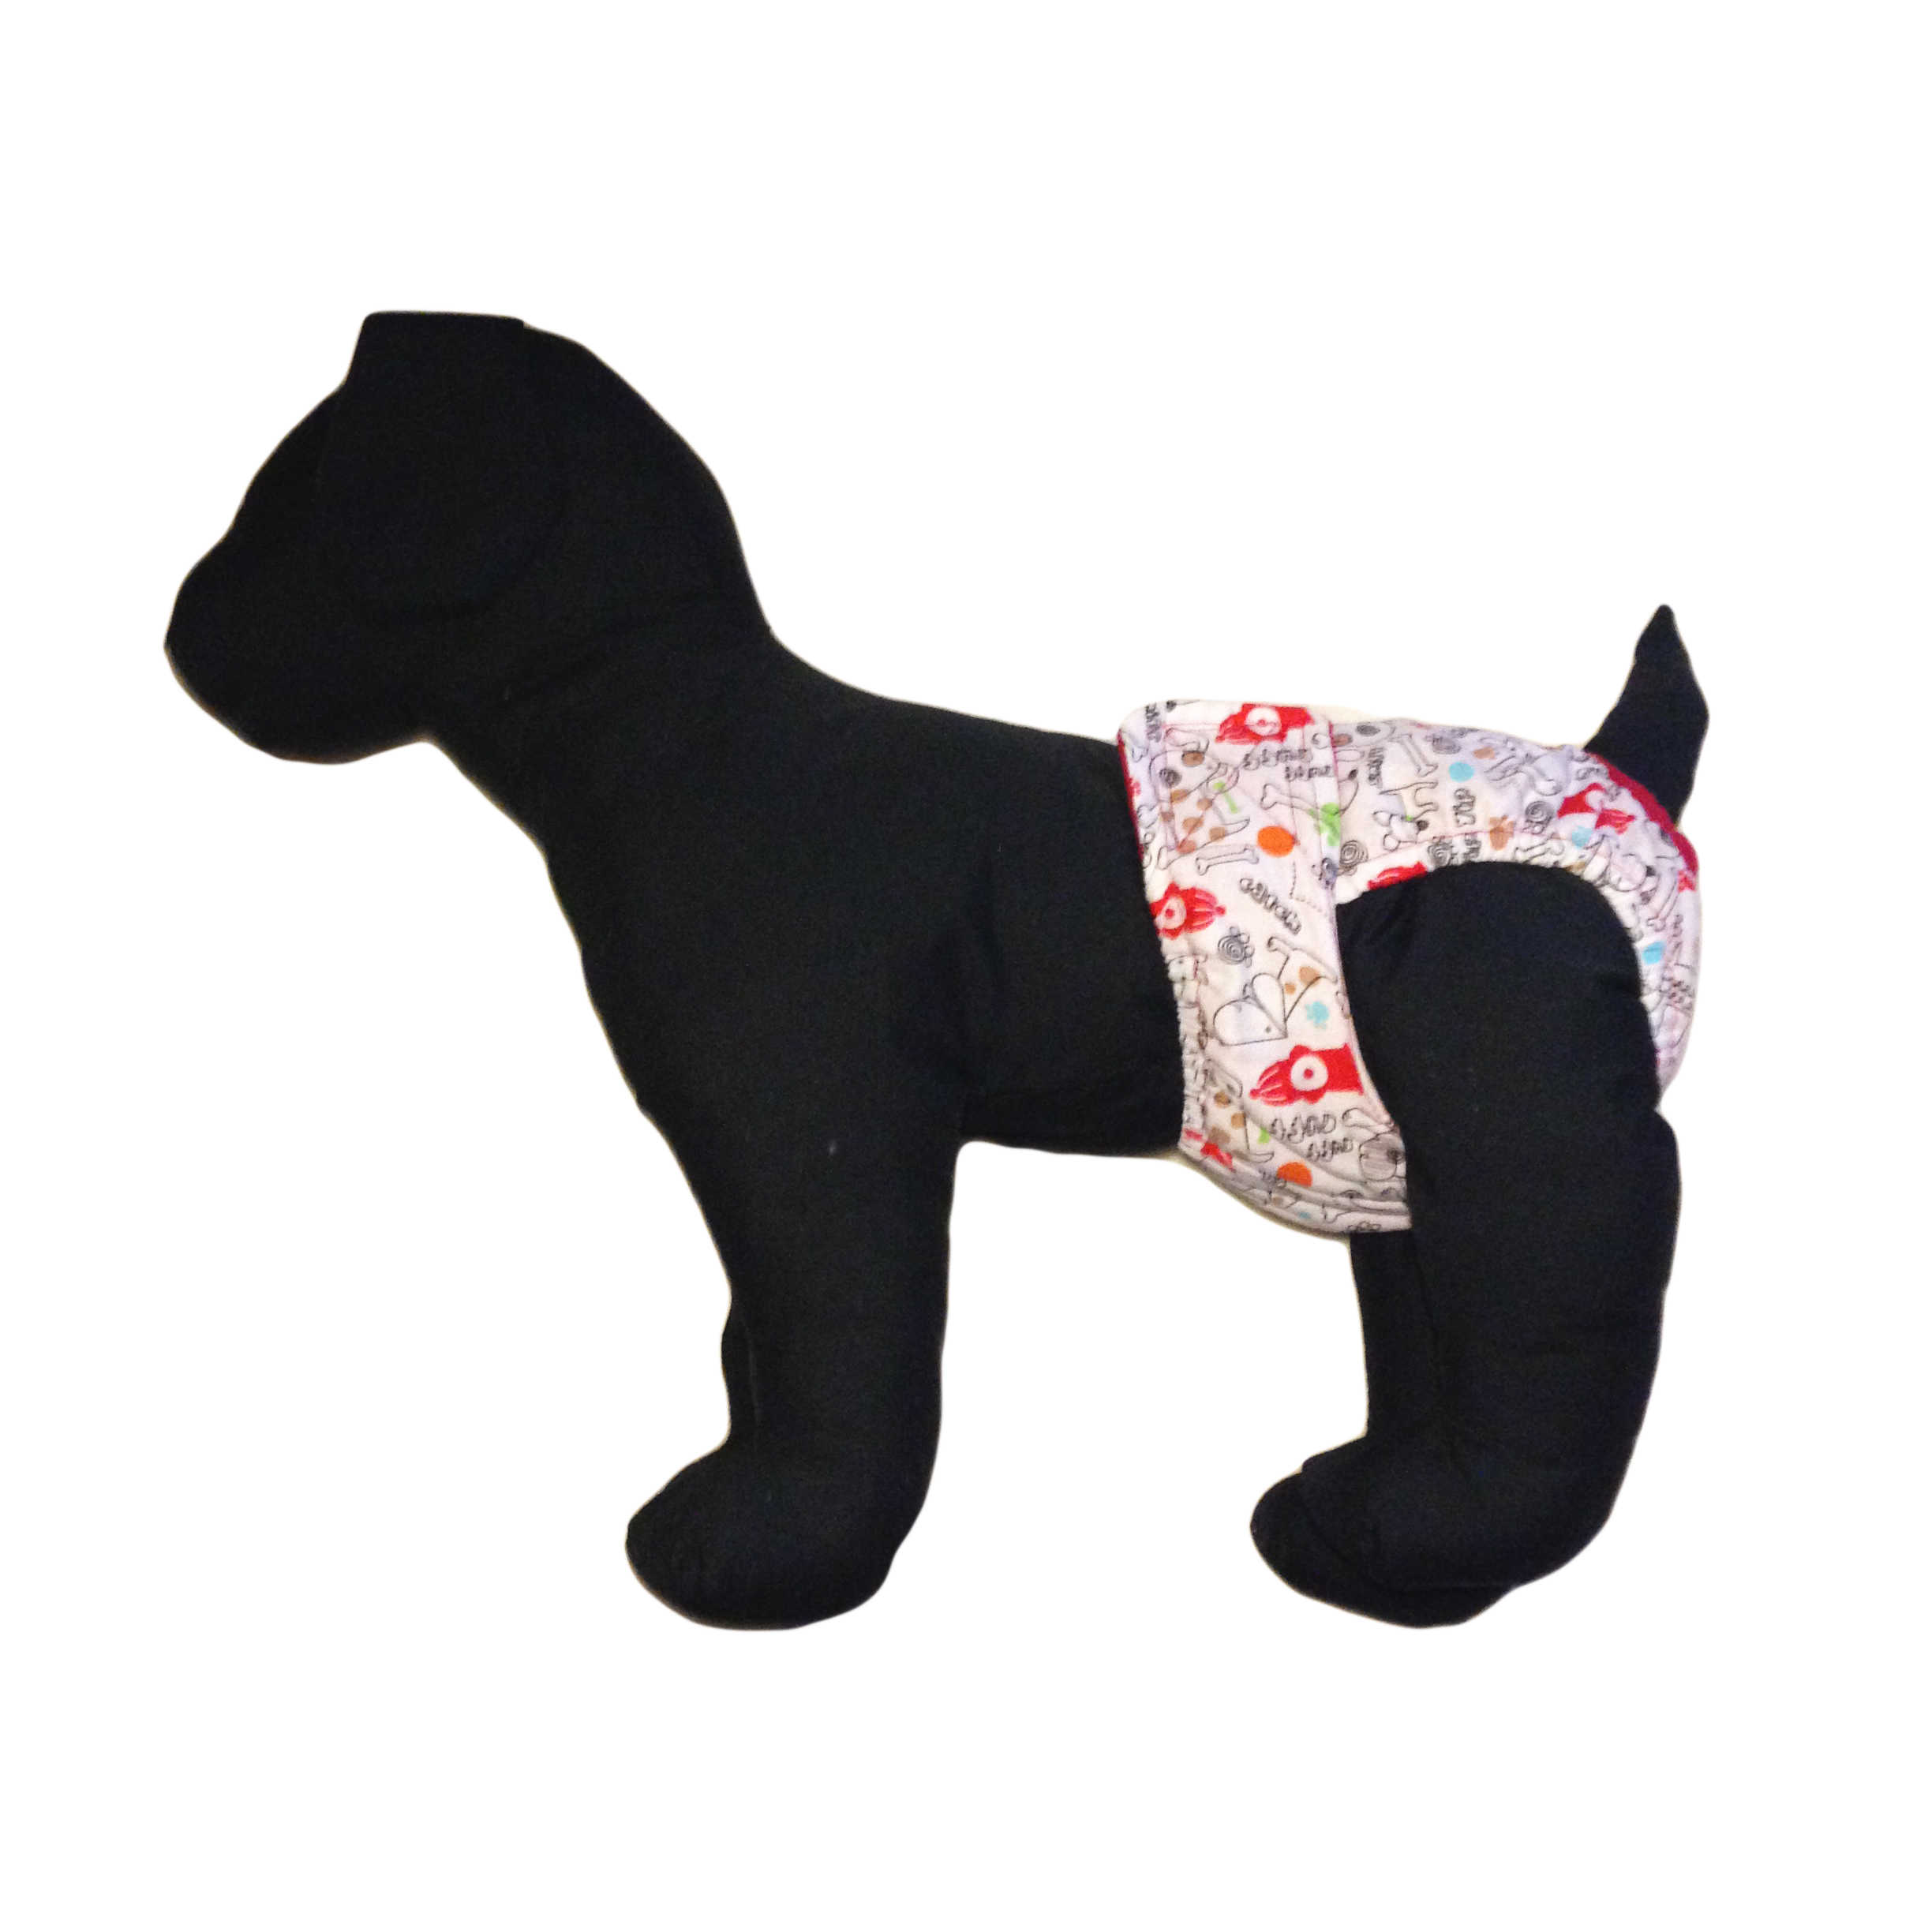 Barkertime Ruff Ruff Washable Dog Diaper